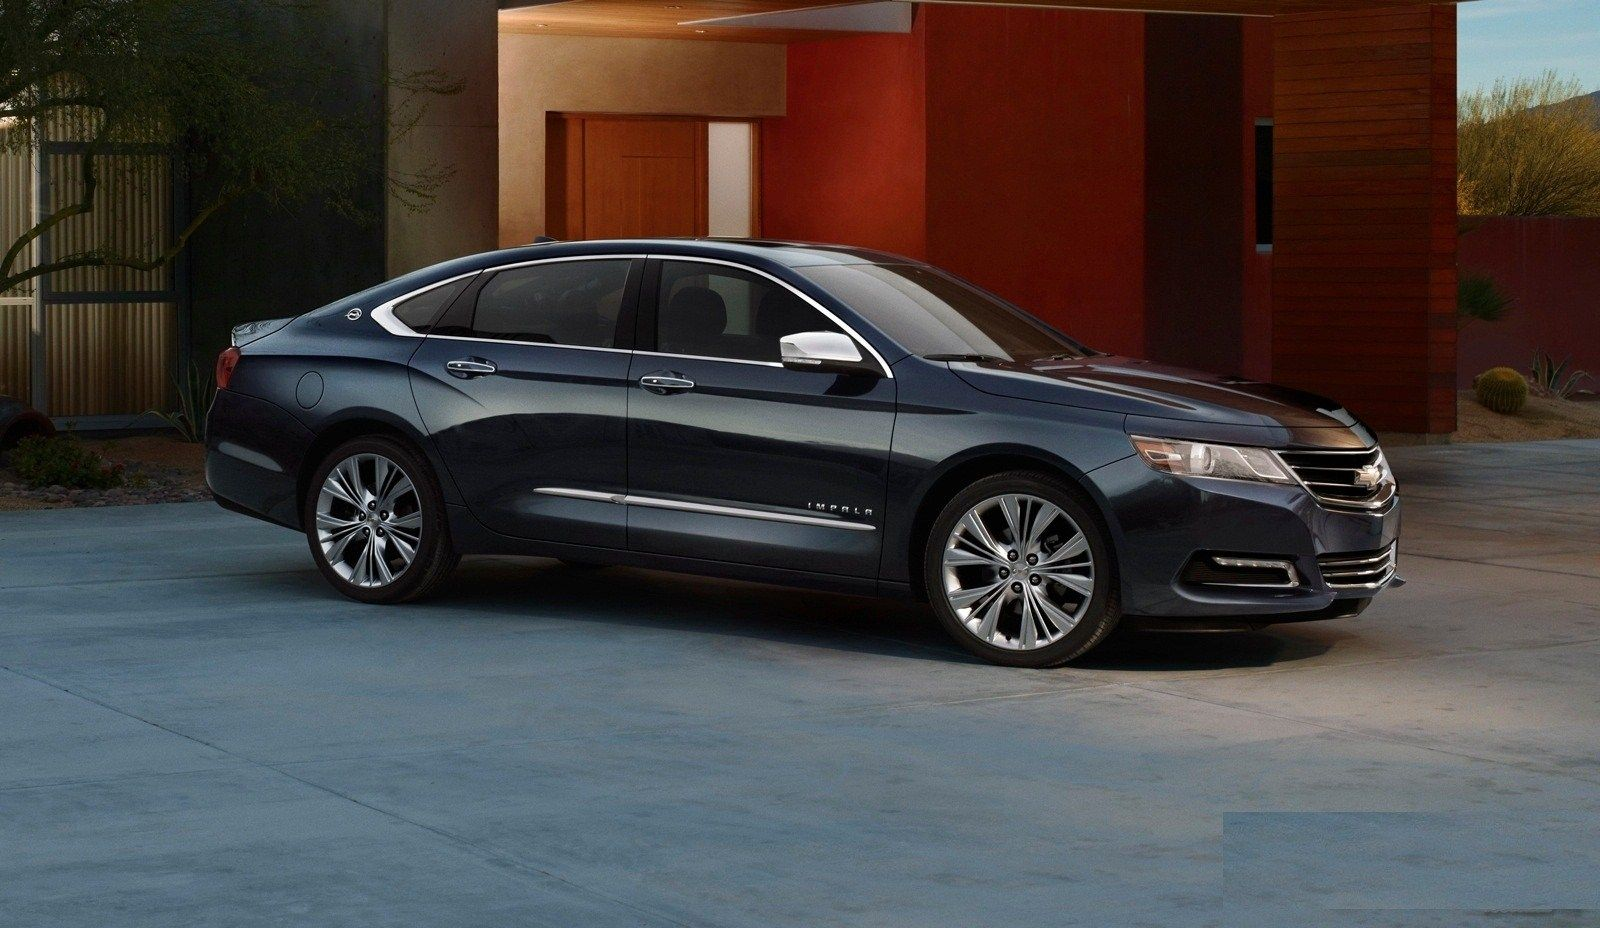 small resolution of images of 2015 impala chevrolet 2013 chevy impala